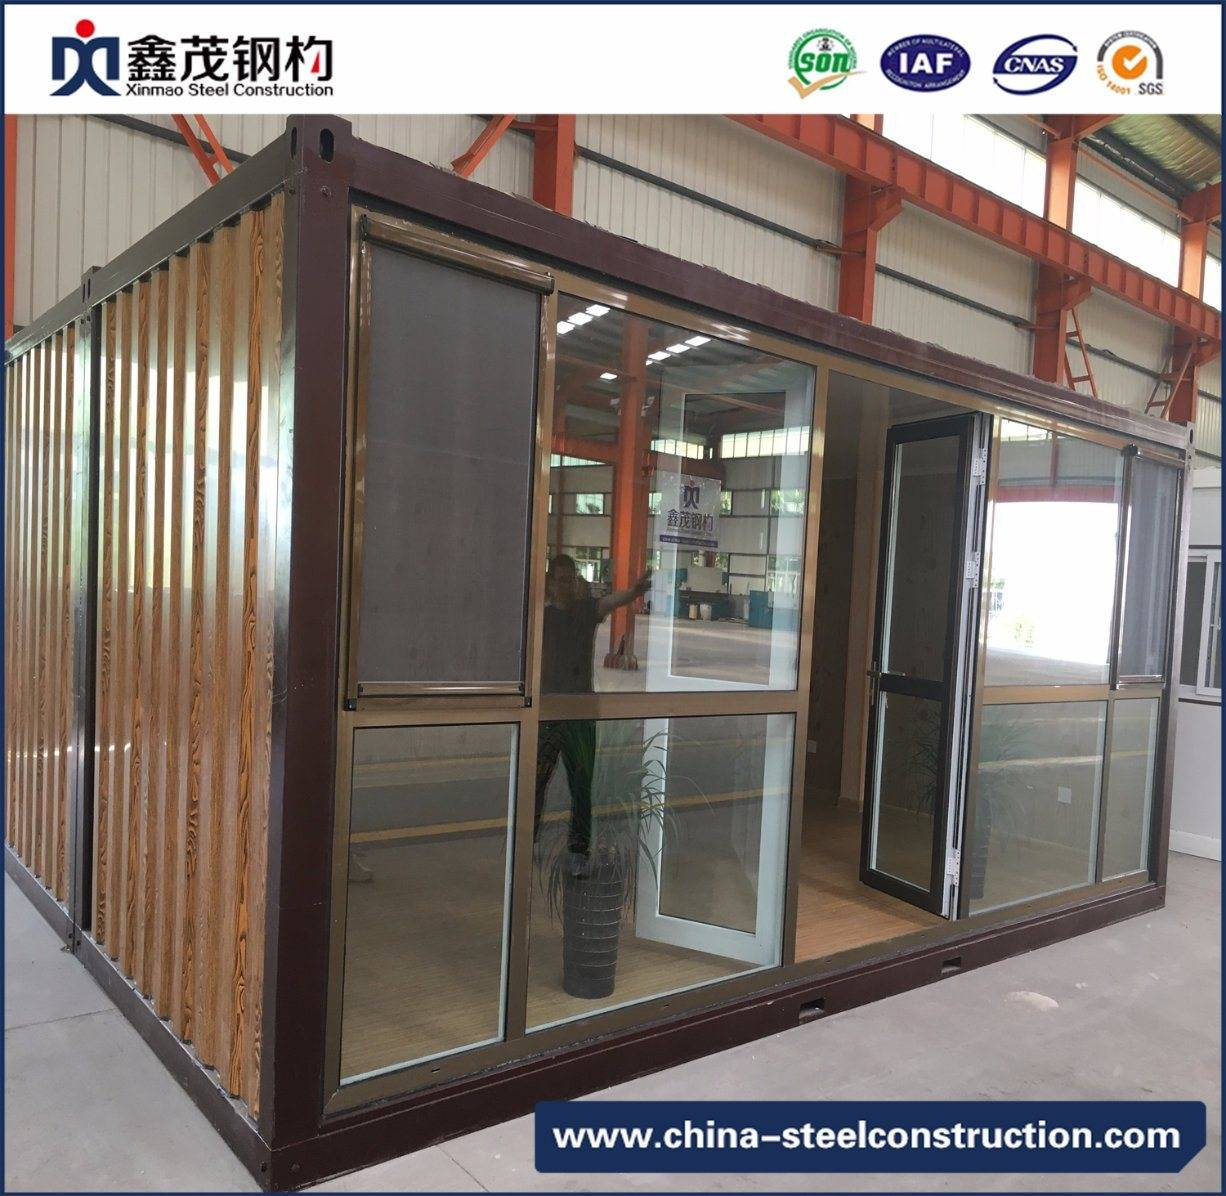 Price Sheet for Prefabricated Warehouse Design - Flat Pack 20FT Container House with Kitchen, Washroom – Xinmao ZT Steel